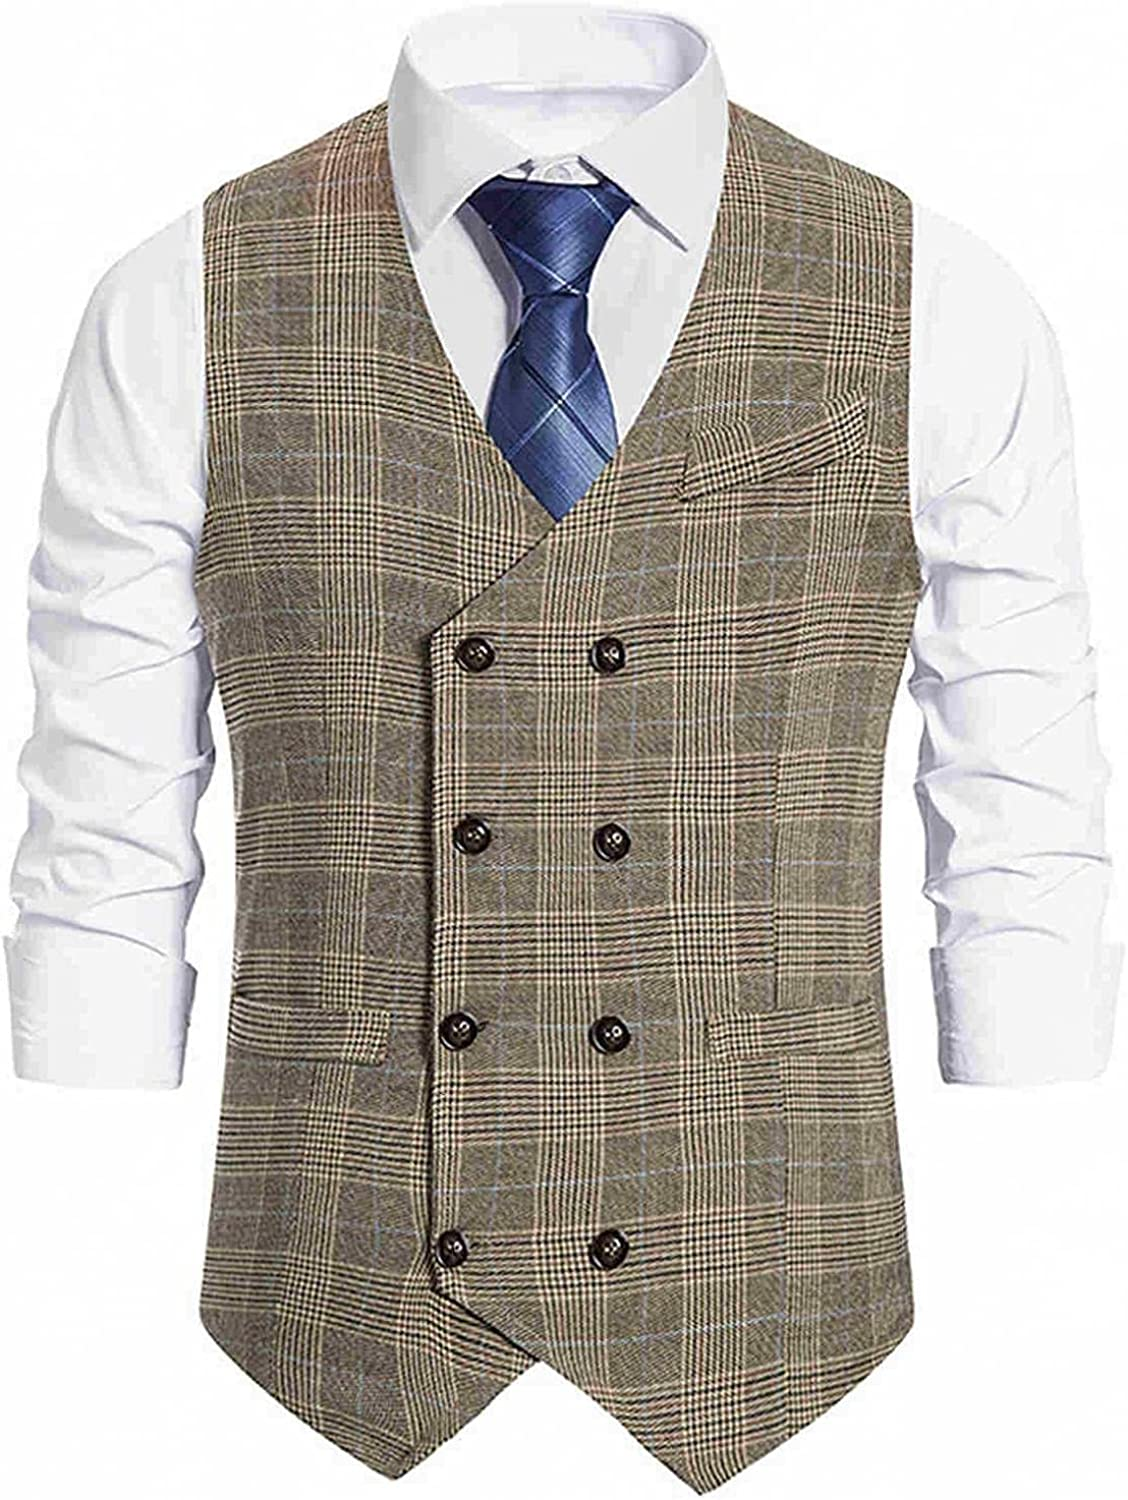 Huangse Mens Plaid Business Suit Vest Regular Fit Jacket Casual Irregular Checked Vest Double Breasted Business Waistcoat